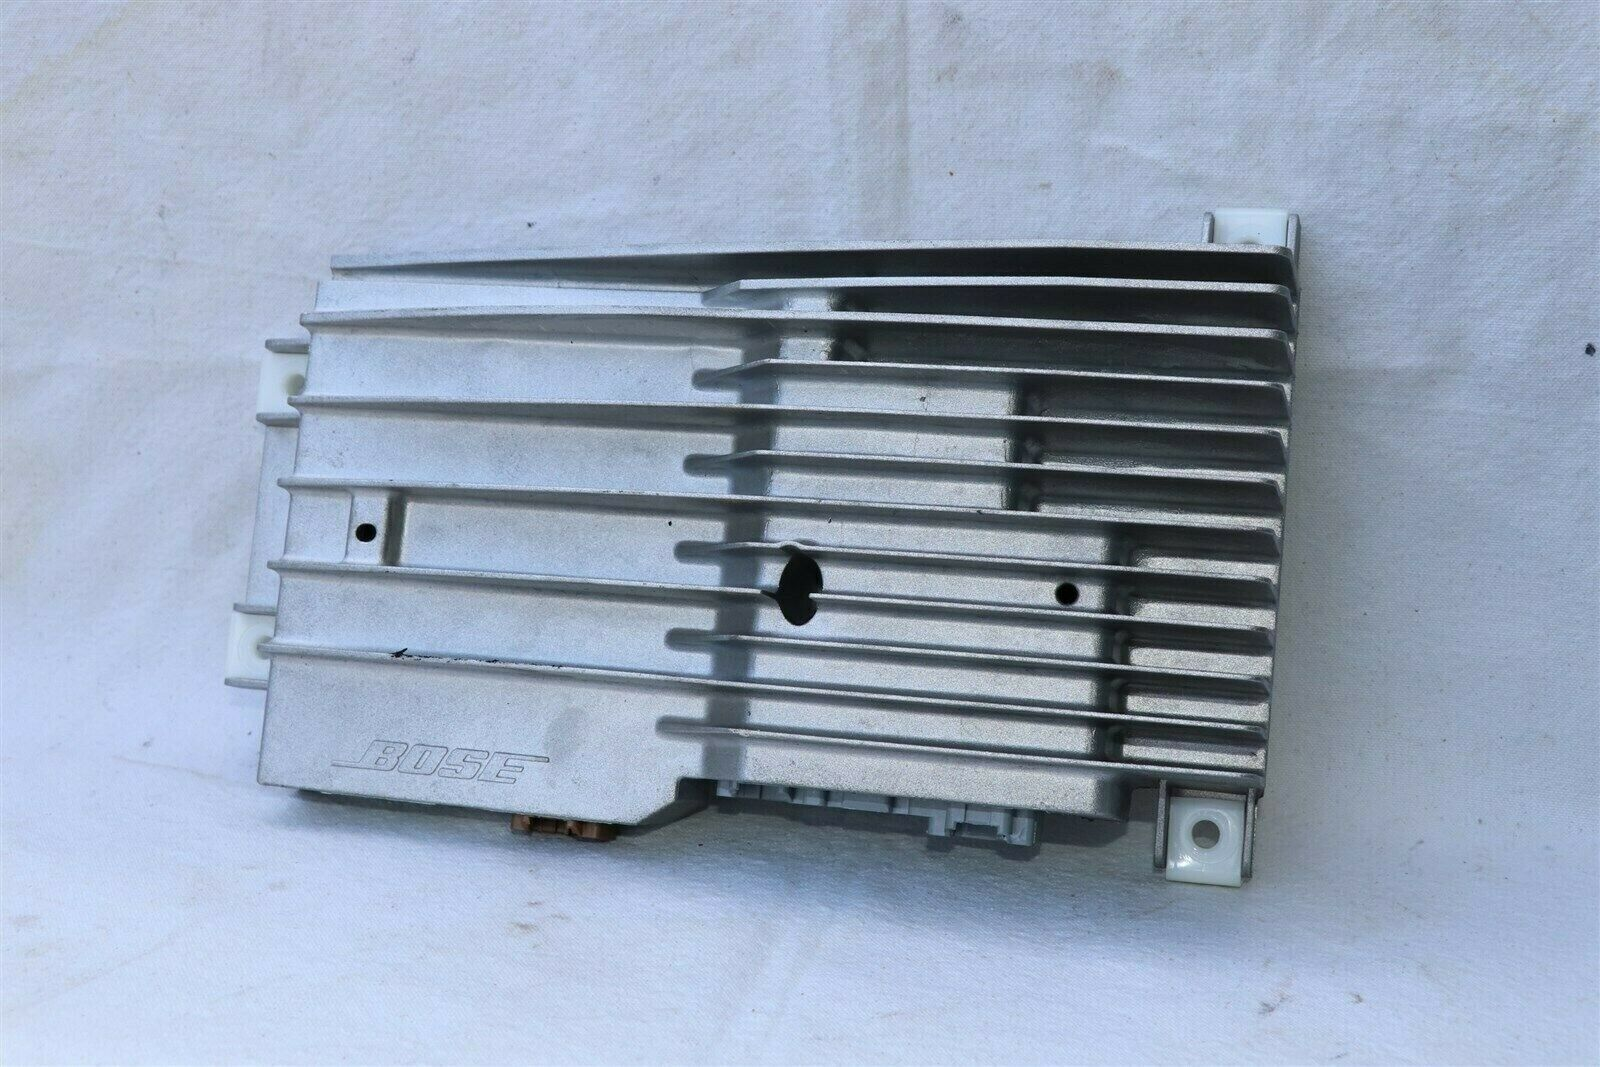 Cadillac CTS Bose Radio Stereo Receiver Audio Amplifier Amp 20869451 GMX322